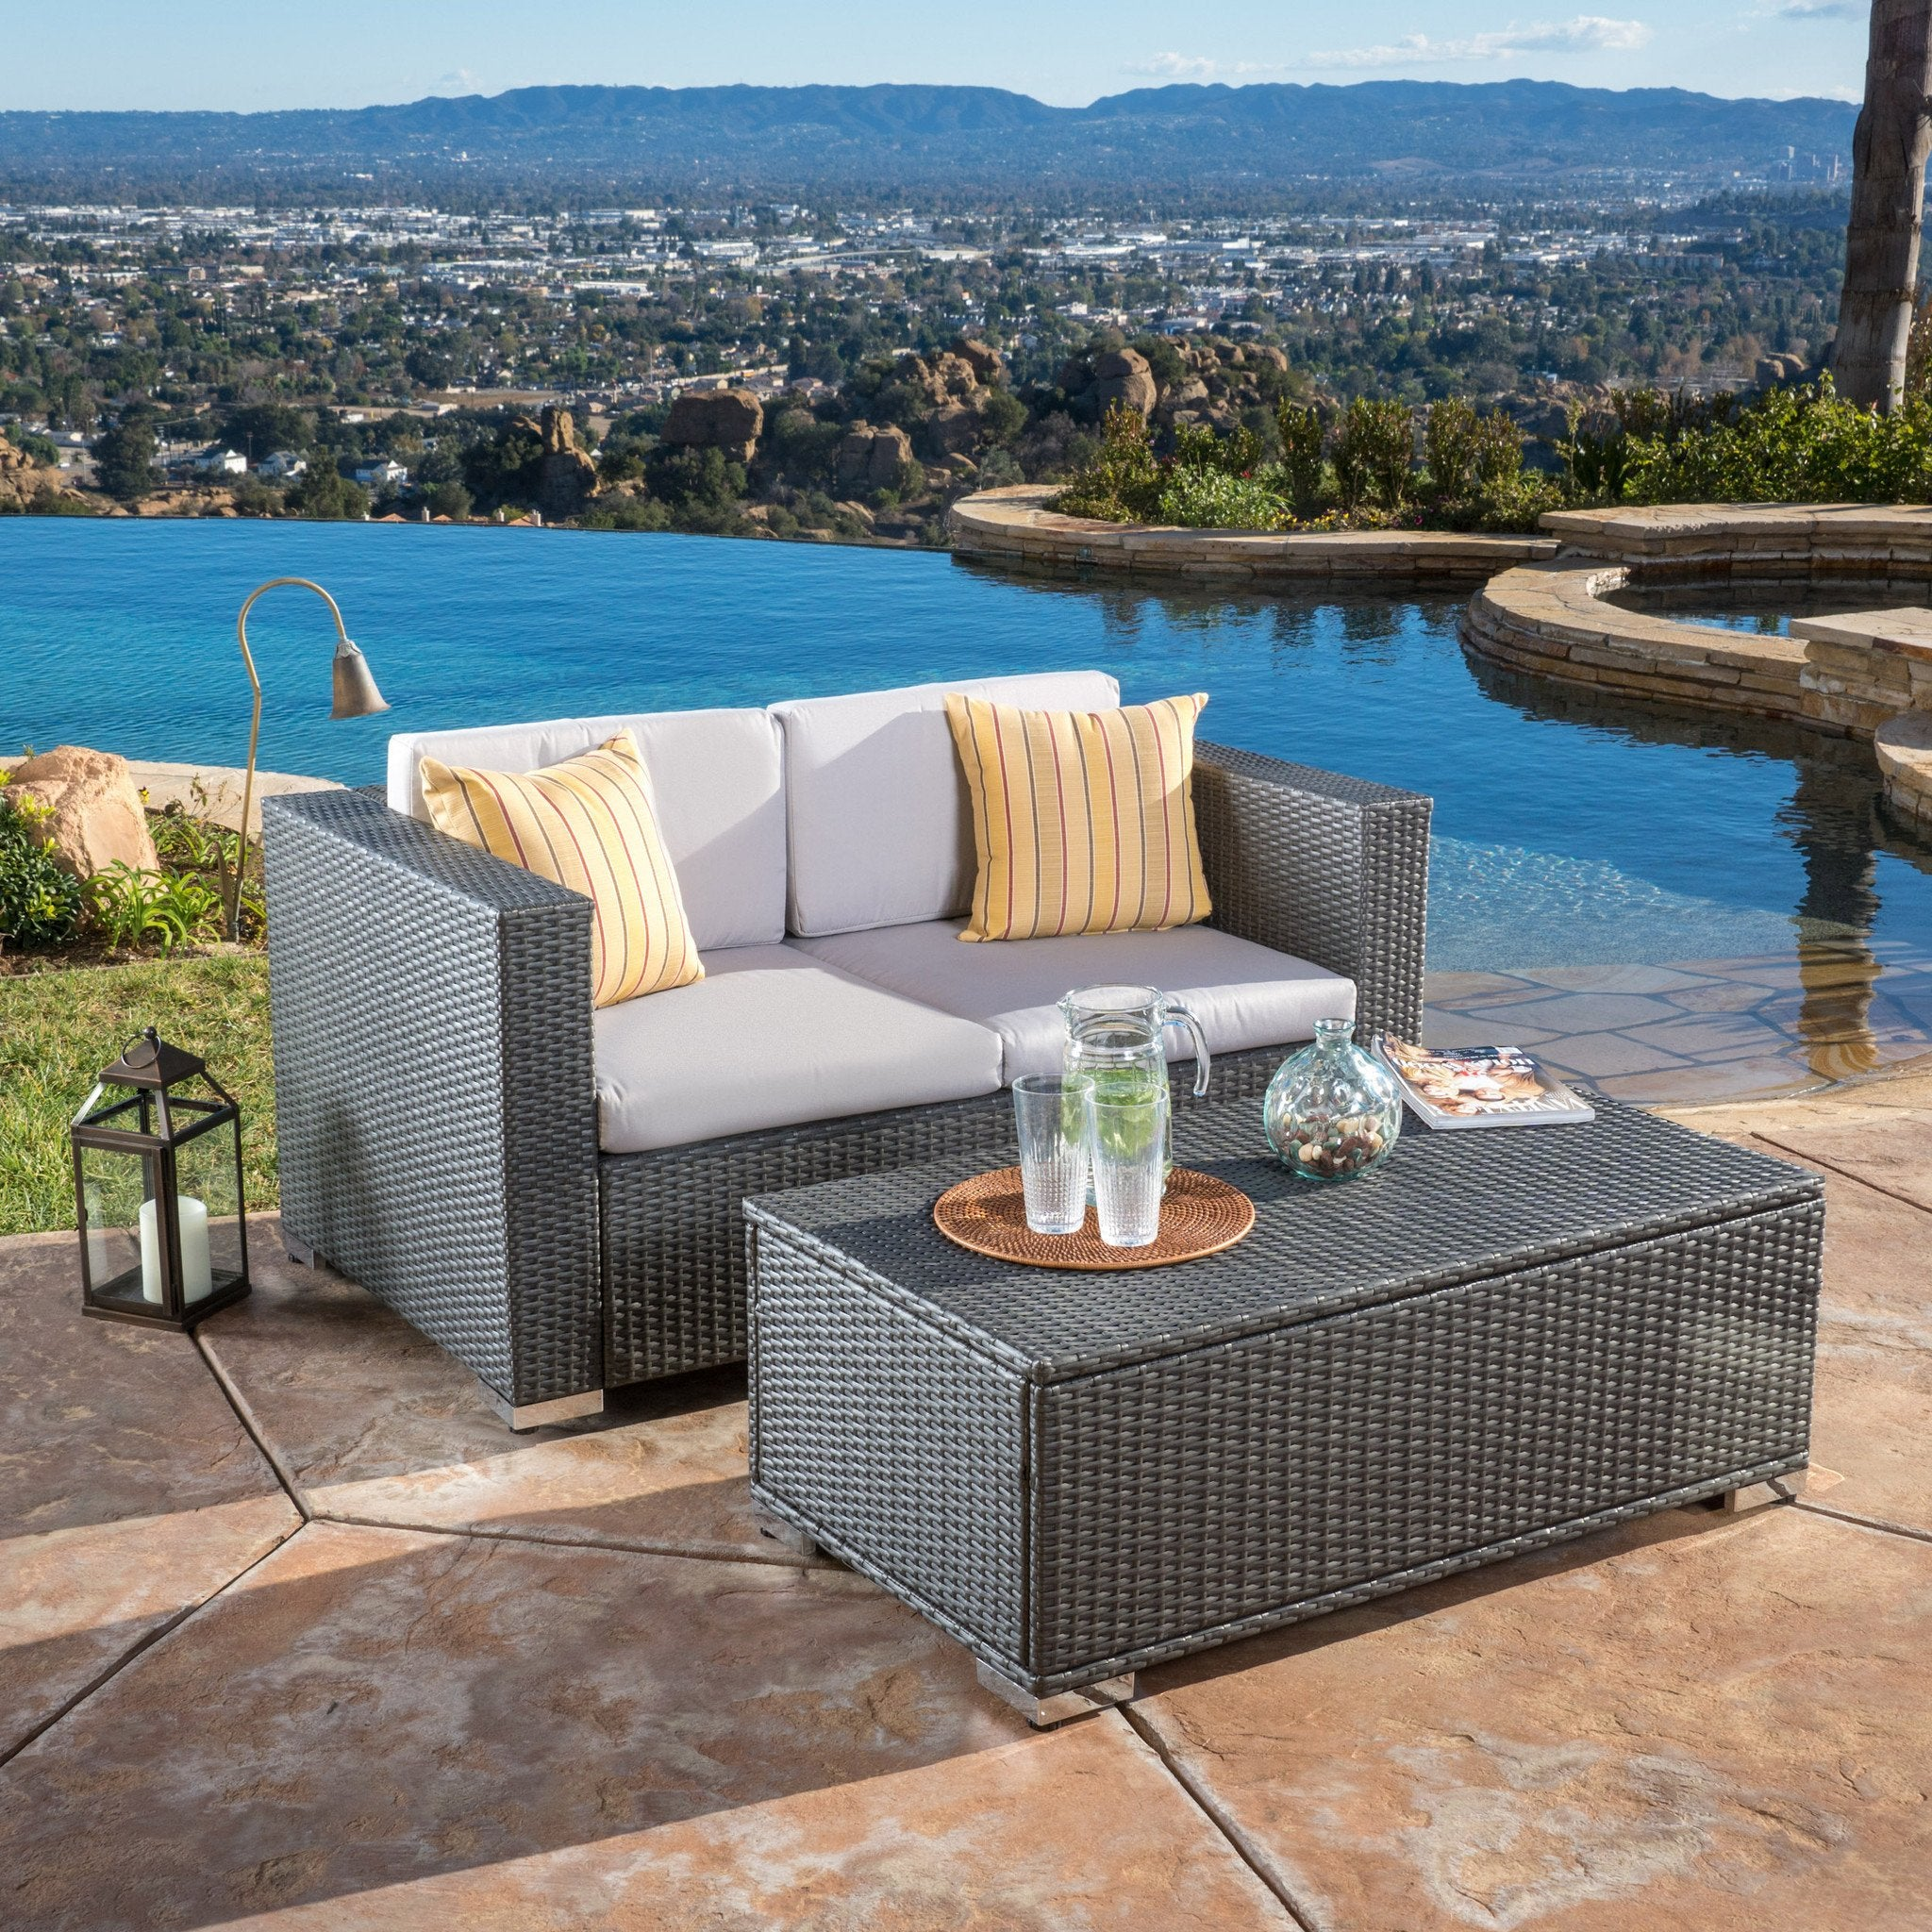 Fitzpatrick - 2Pc Outdoor Sofa And Table Set